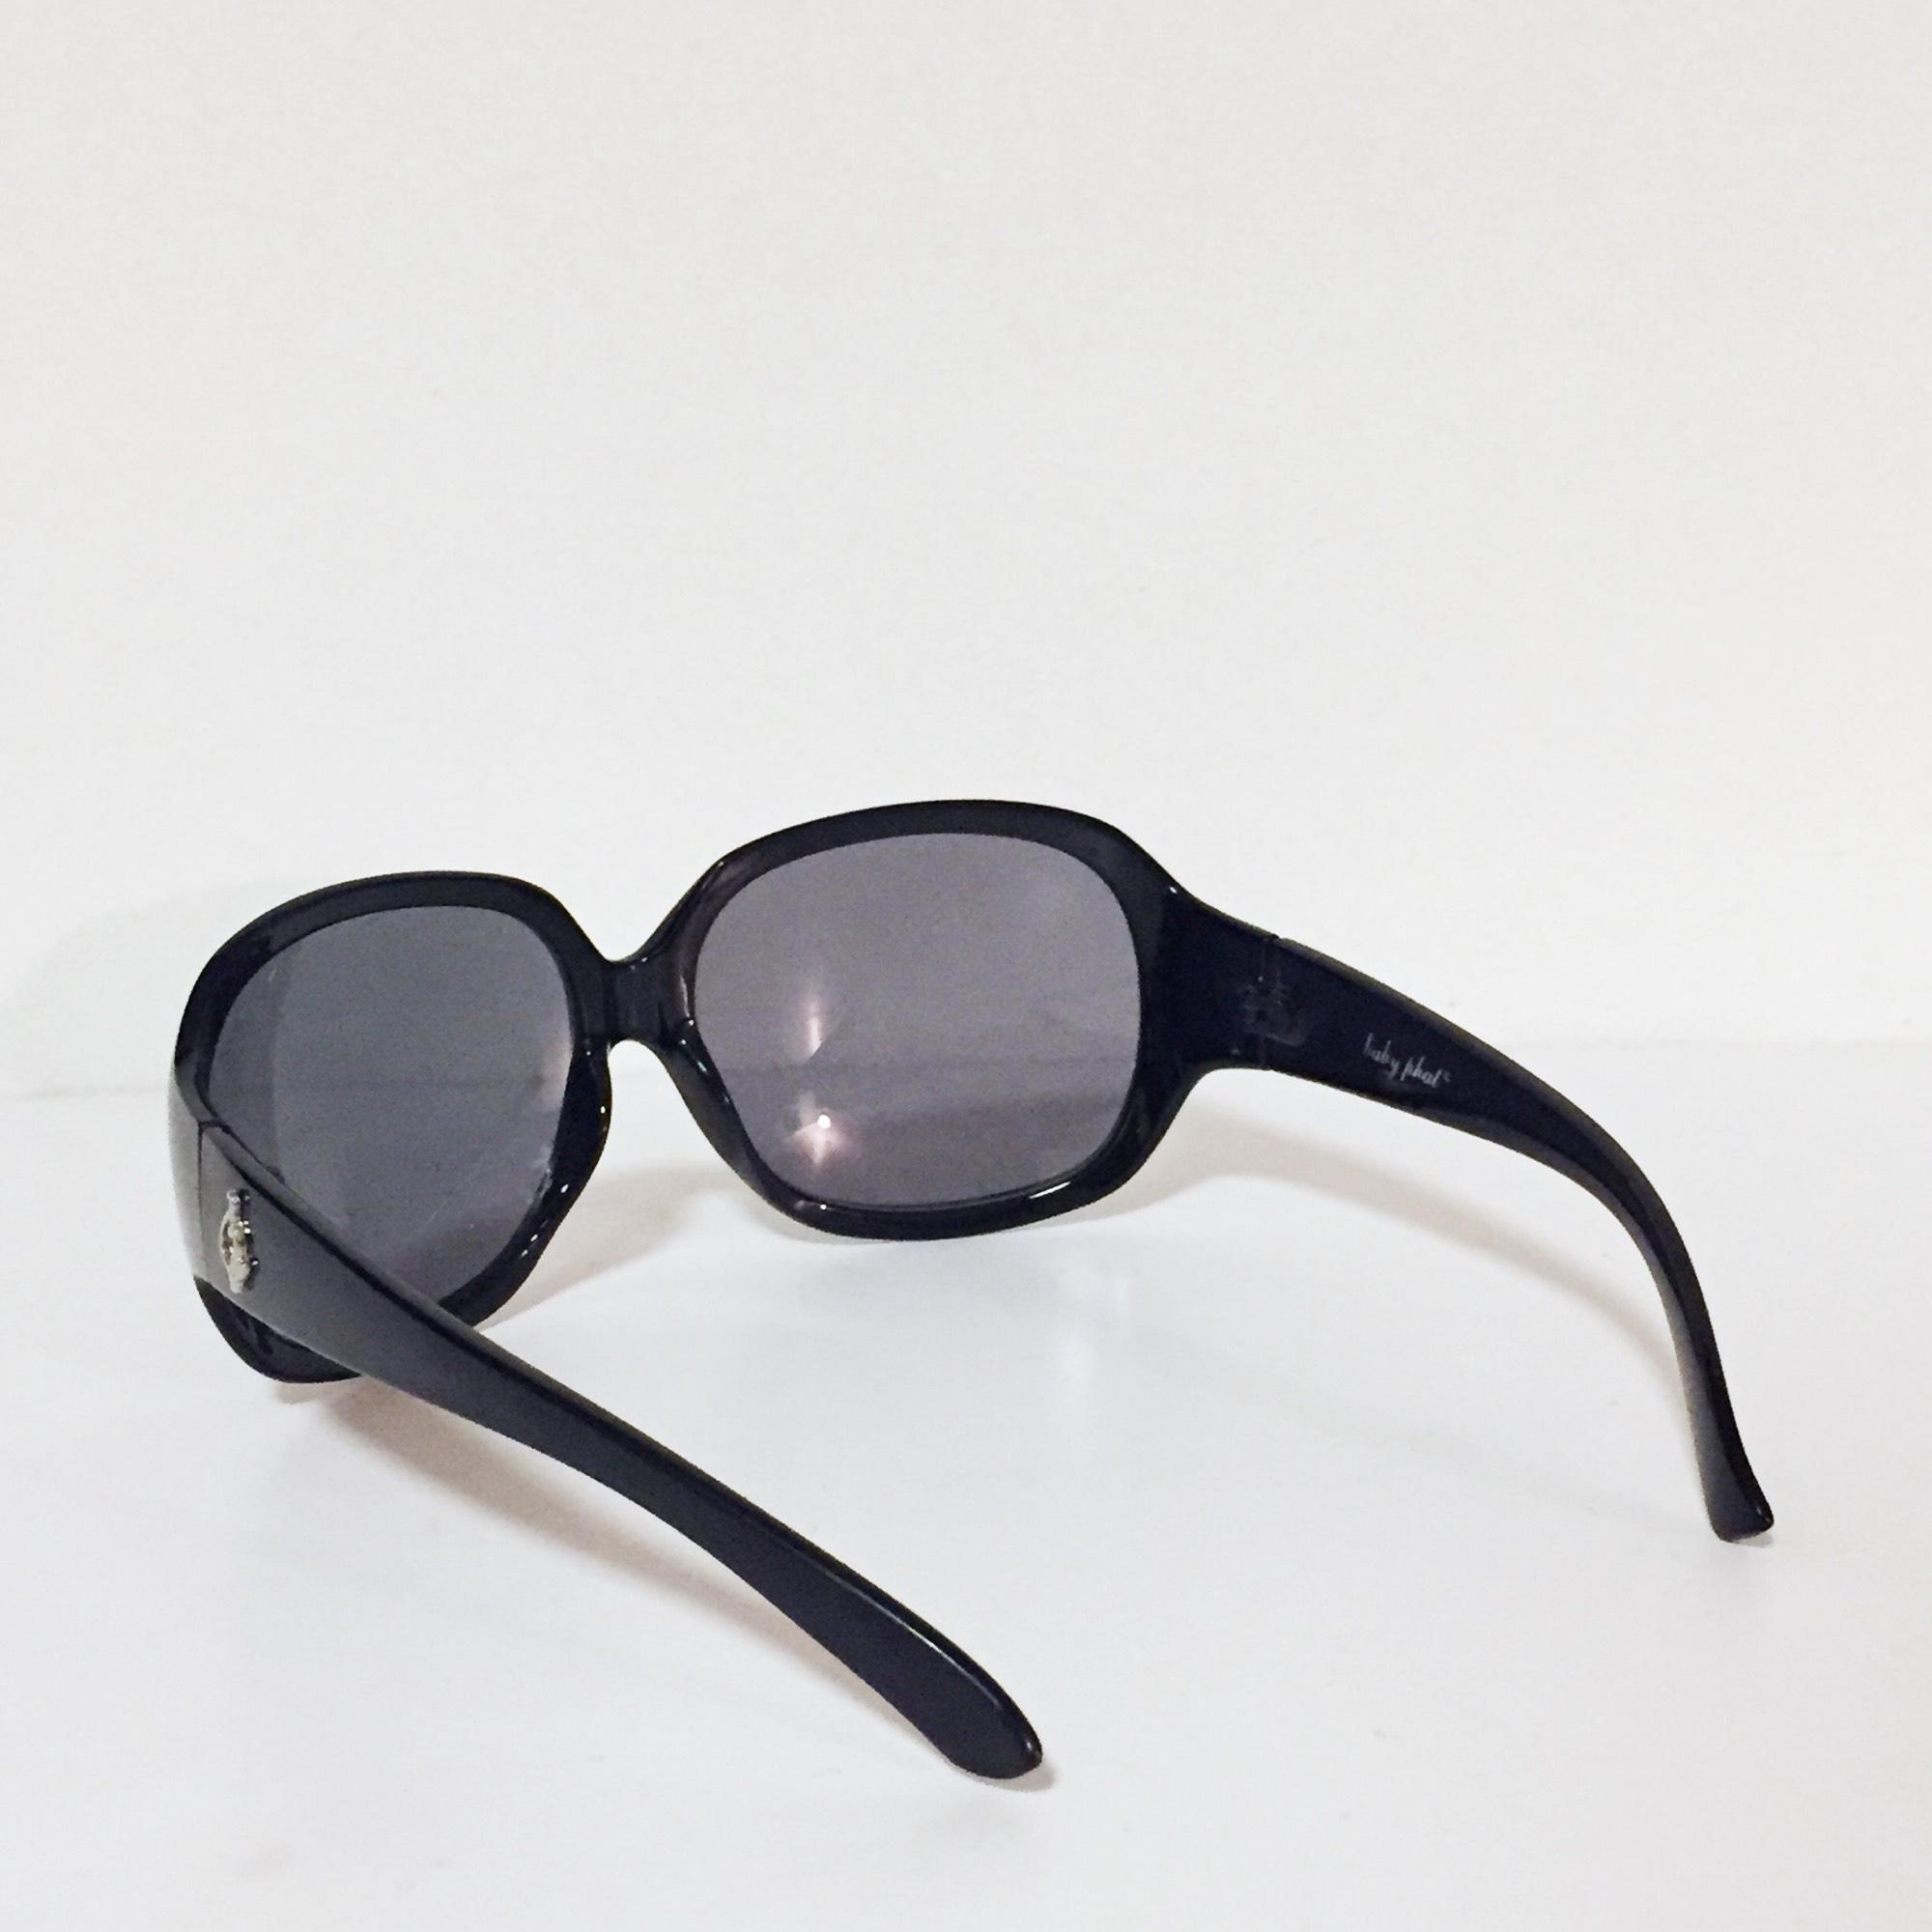 Baby Phat Sunglasses | Dress images